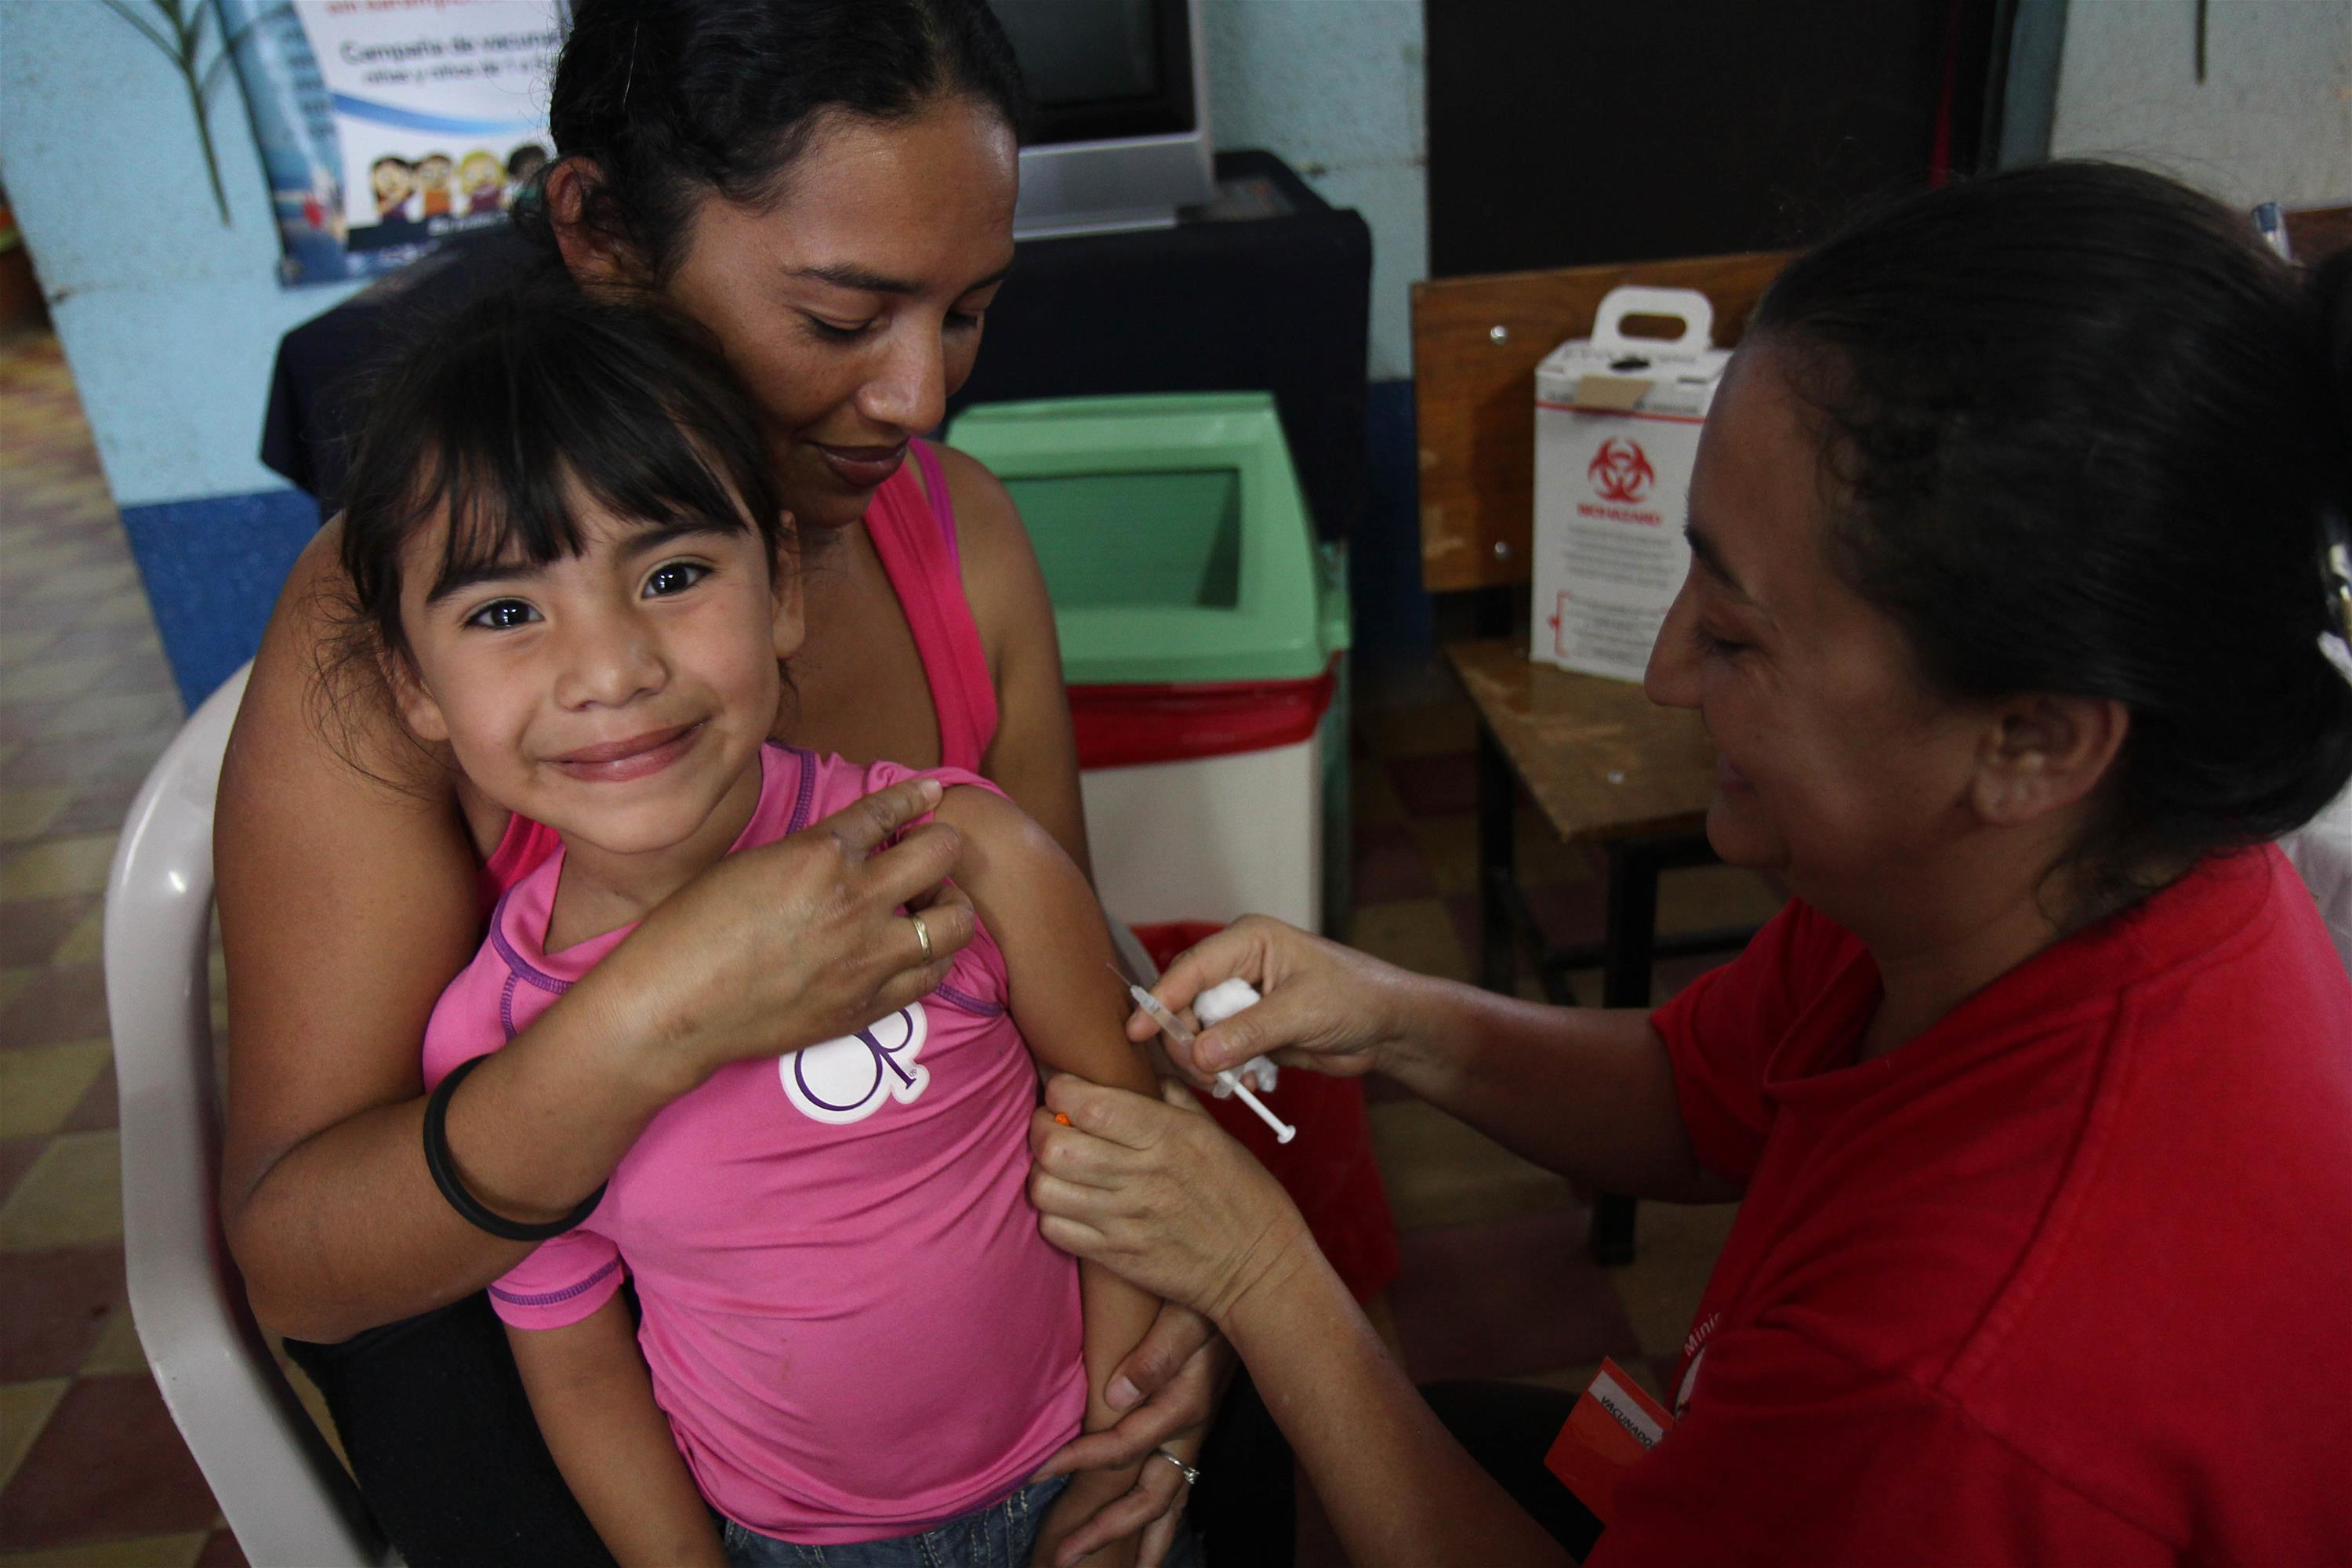 20 million children miss out on lifesaving measles, diphtheria and tetanus vaccines in 2018 - Brand Spur